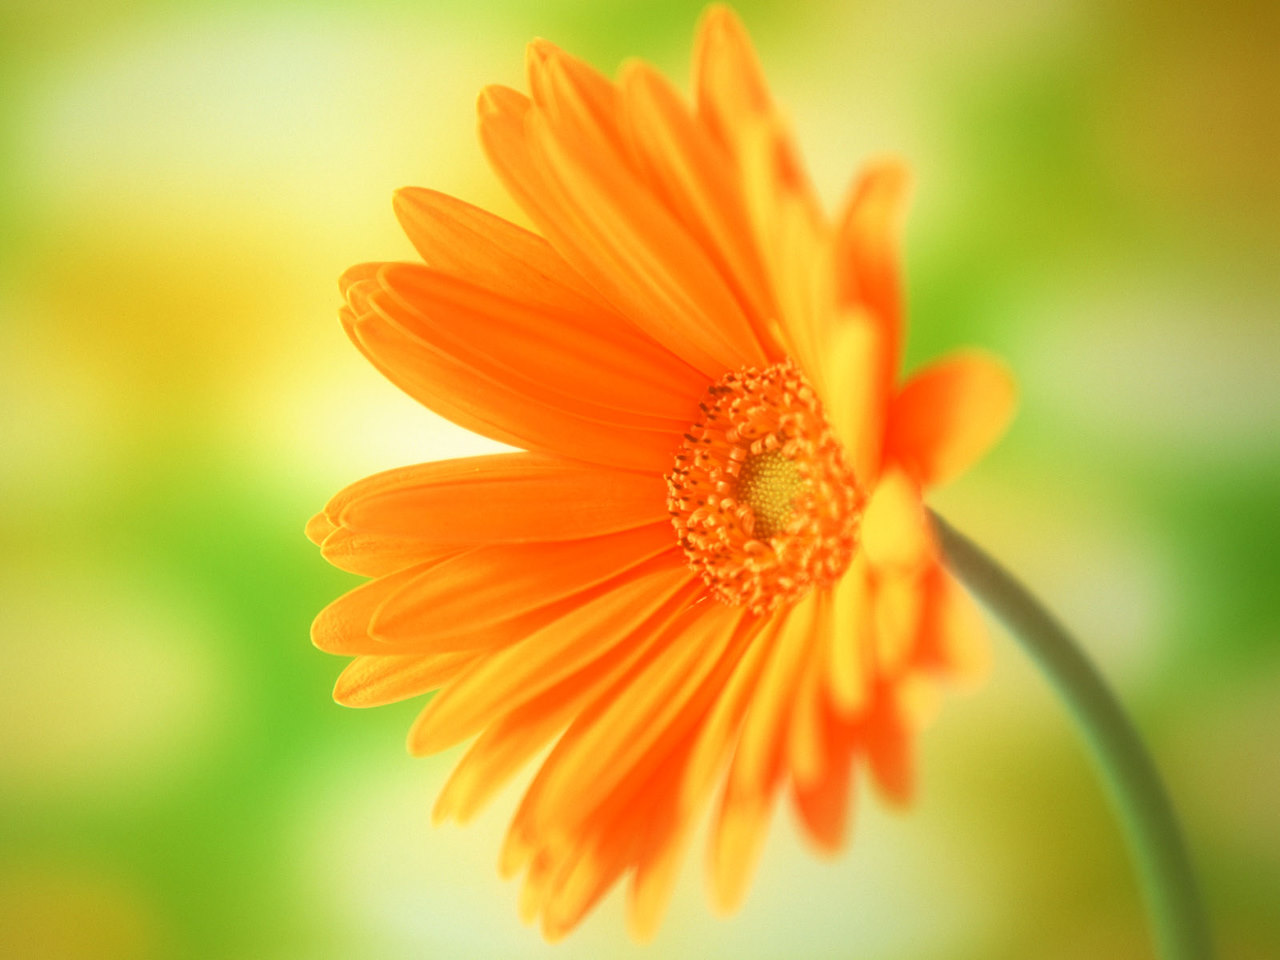 LATEST WALLPAPERS: Flowers Wallpapers, Flowers Animated